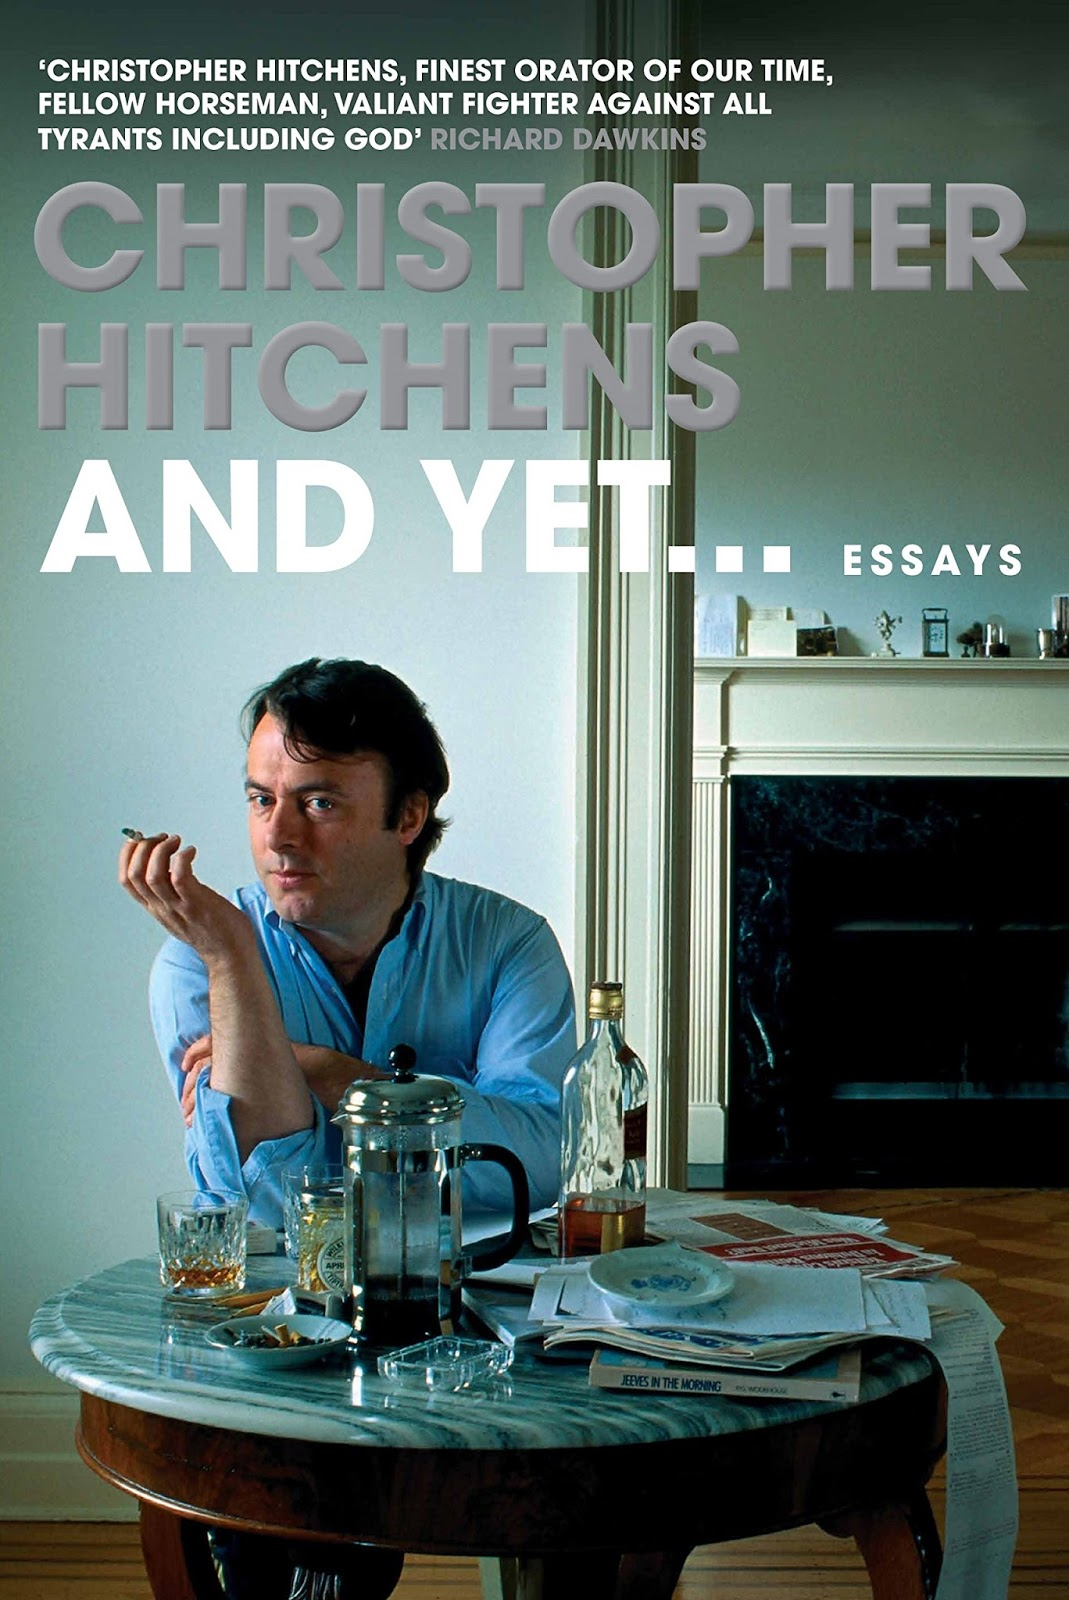 christopher hitchens new book of essays Christopher eric hitchens was an anglo-american author, columnist, essayist, orator, religious and literary critic, social critic, and journalist hitchens was the author, co-author, editor or co-editor of over 30 books, including five collections of essays, on a range of subjects, including politics.